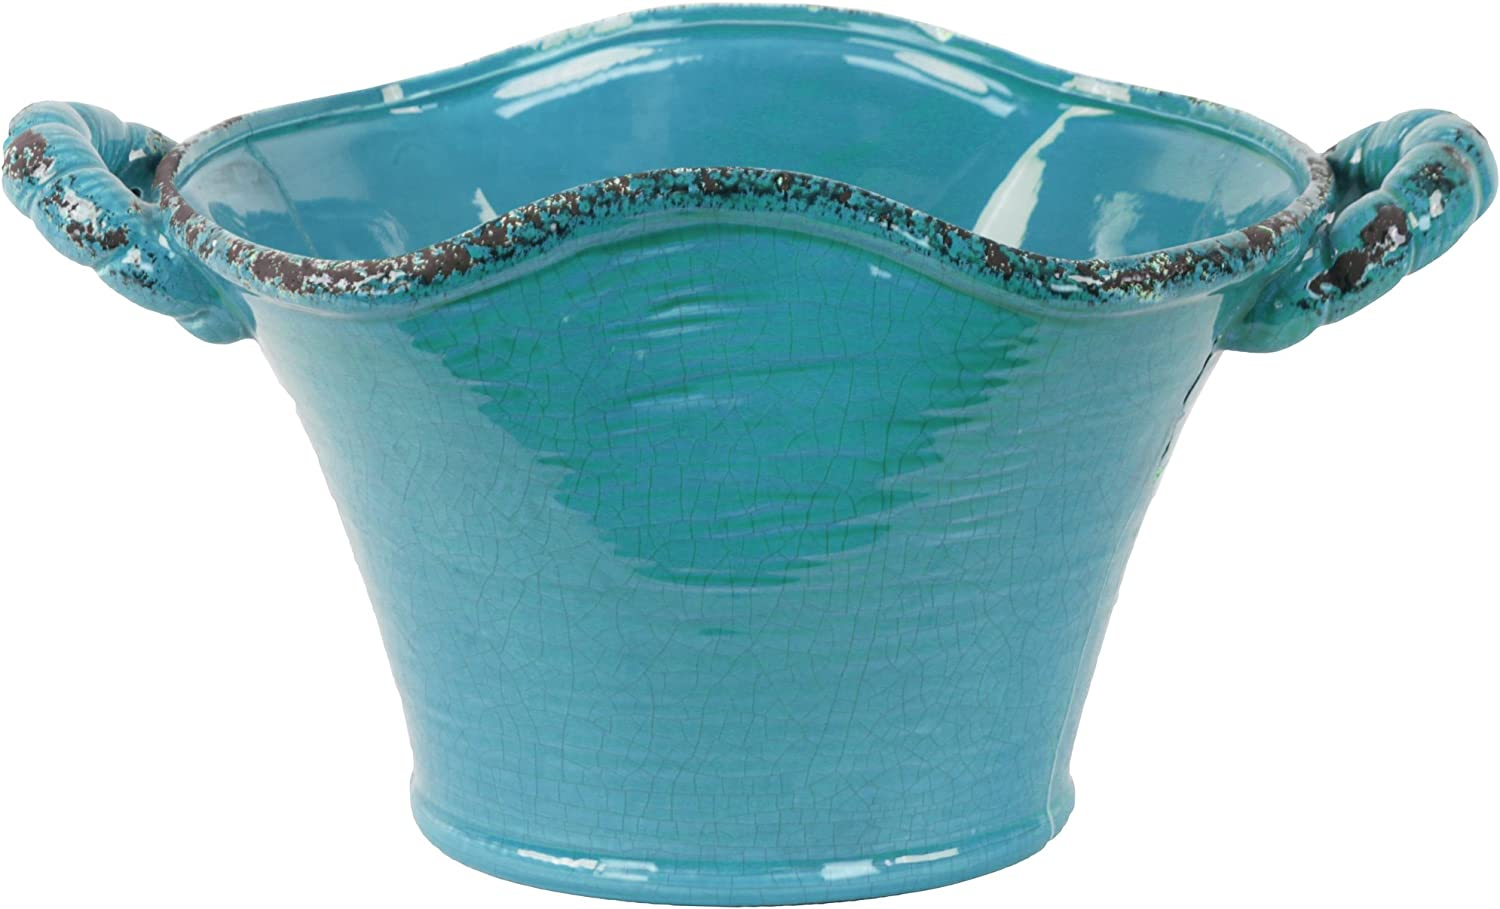 Urban Trends 31824 Ceramic Stadium OFFicial site Shaped wit Tapered Pot Tuscan Las Vegas Mall